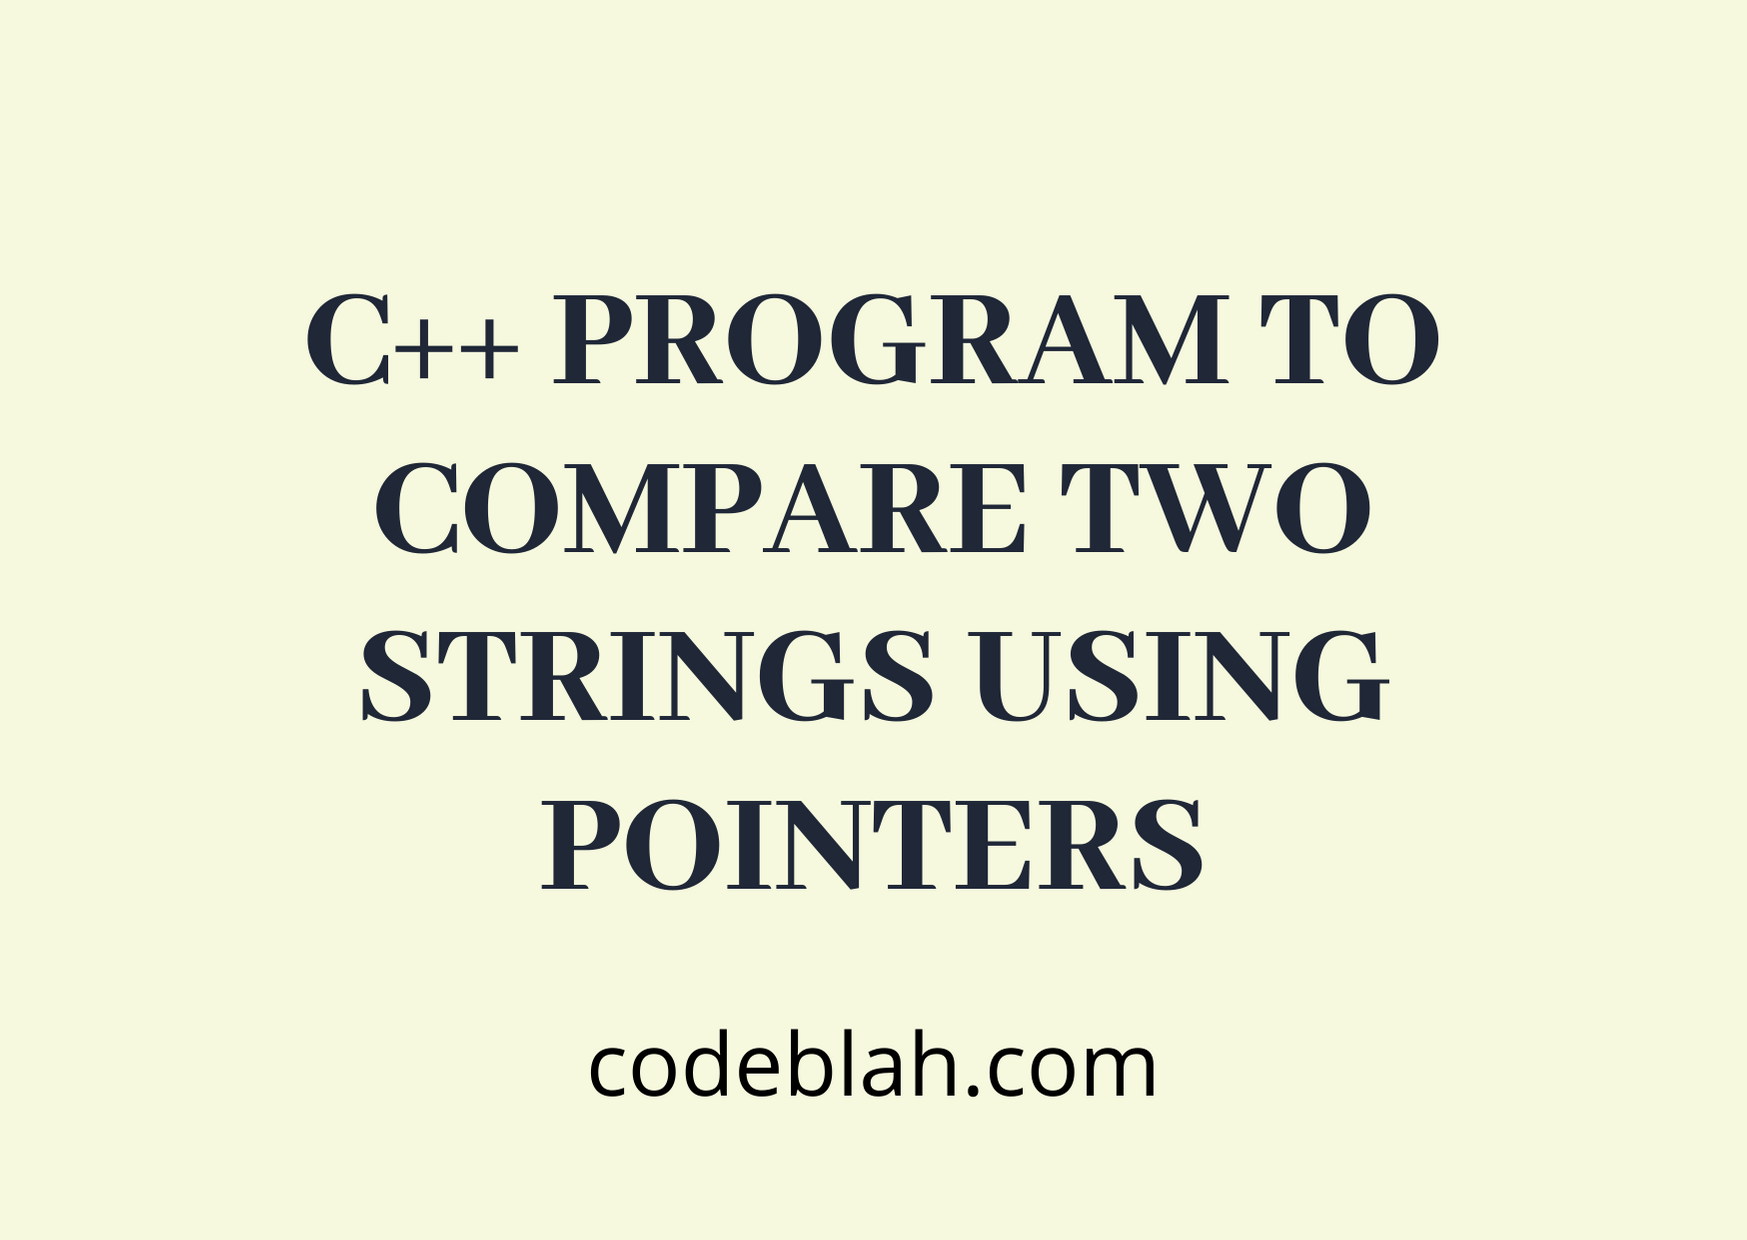 C++ Program to Compare Two Strings Using Pointers